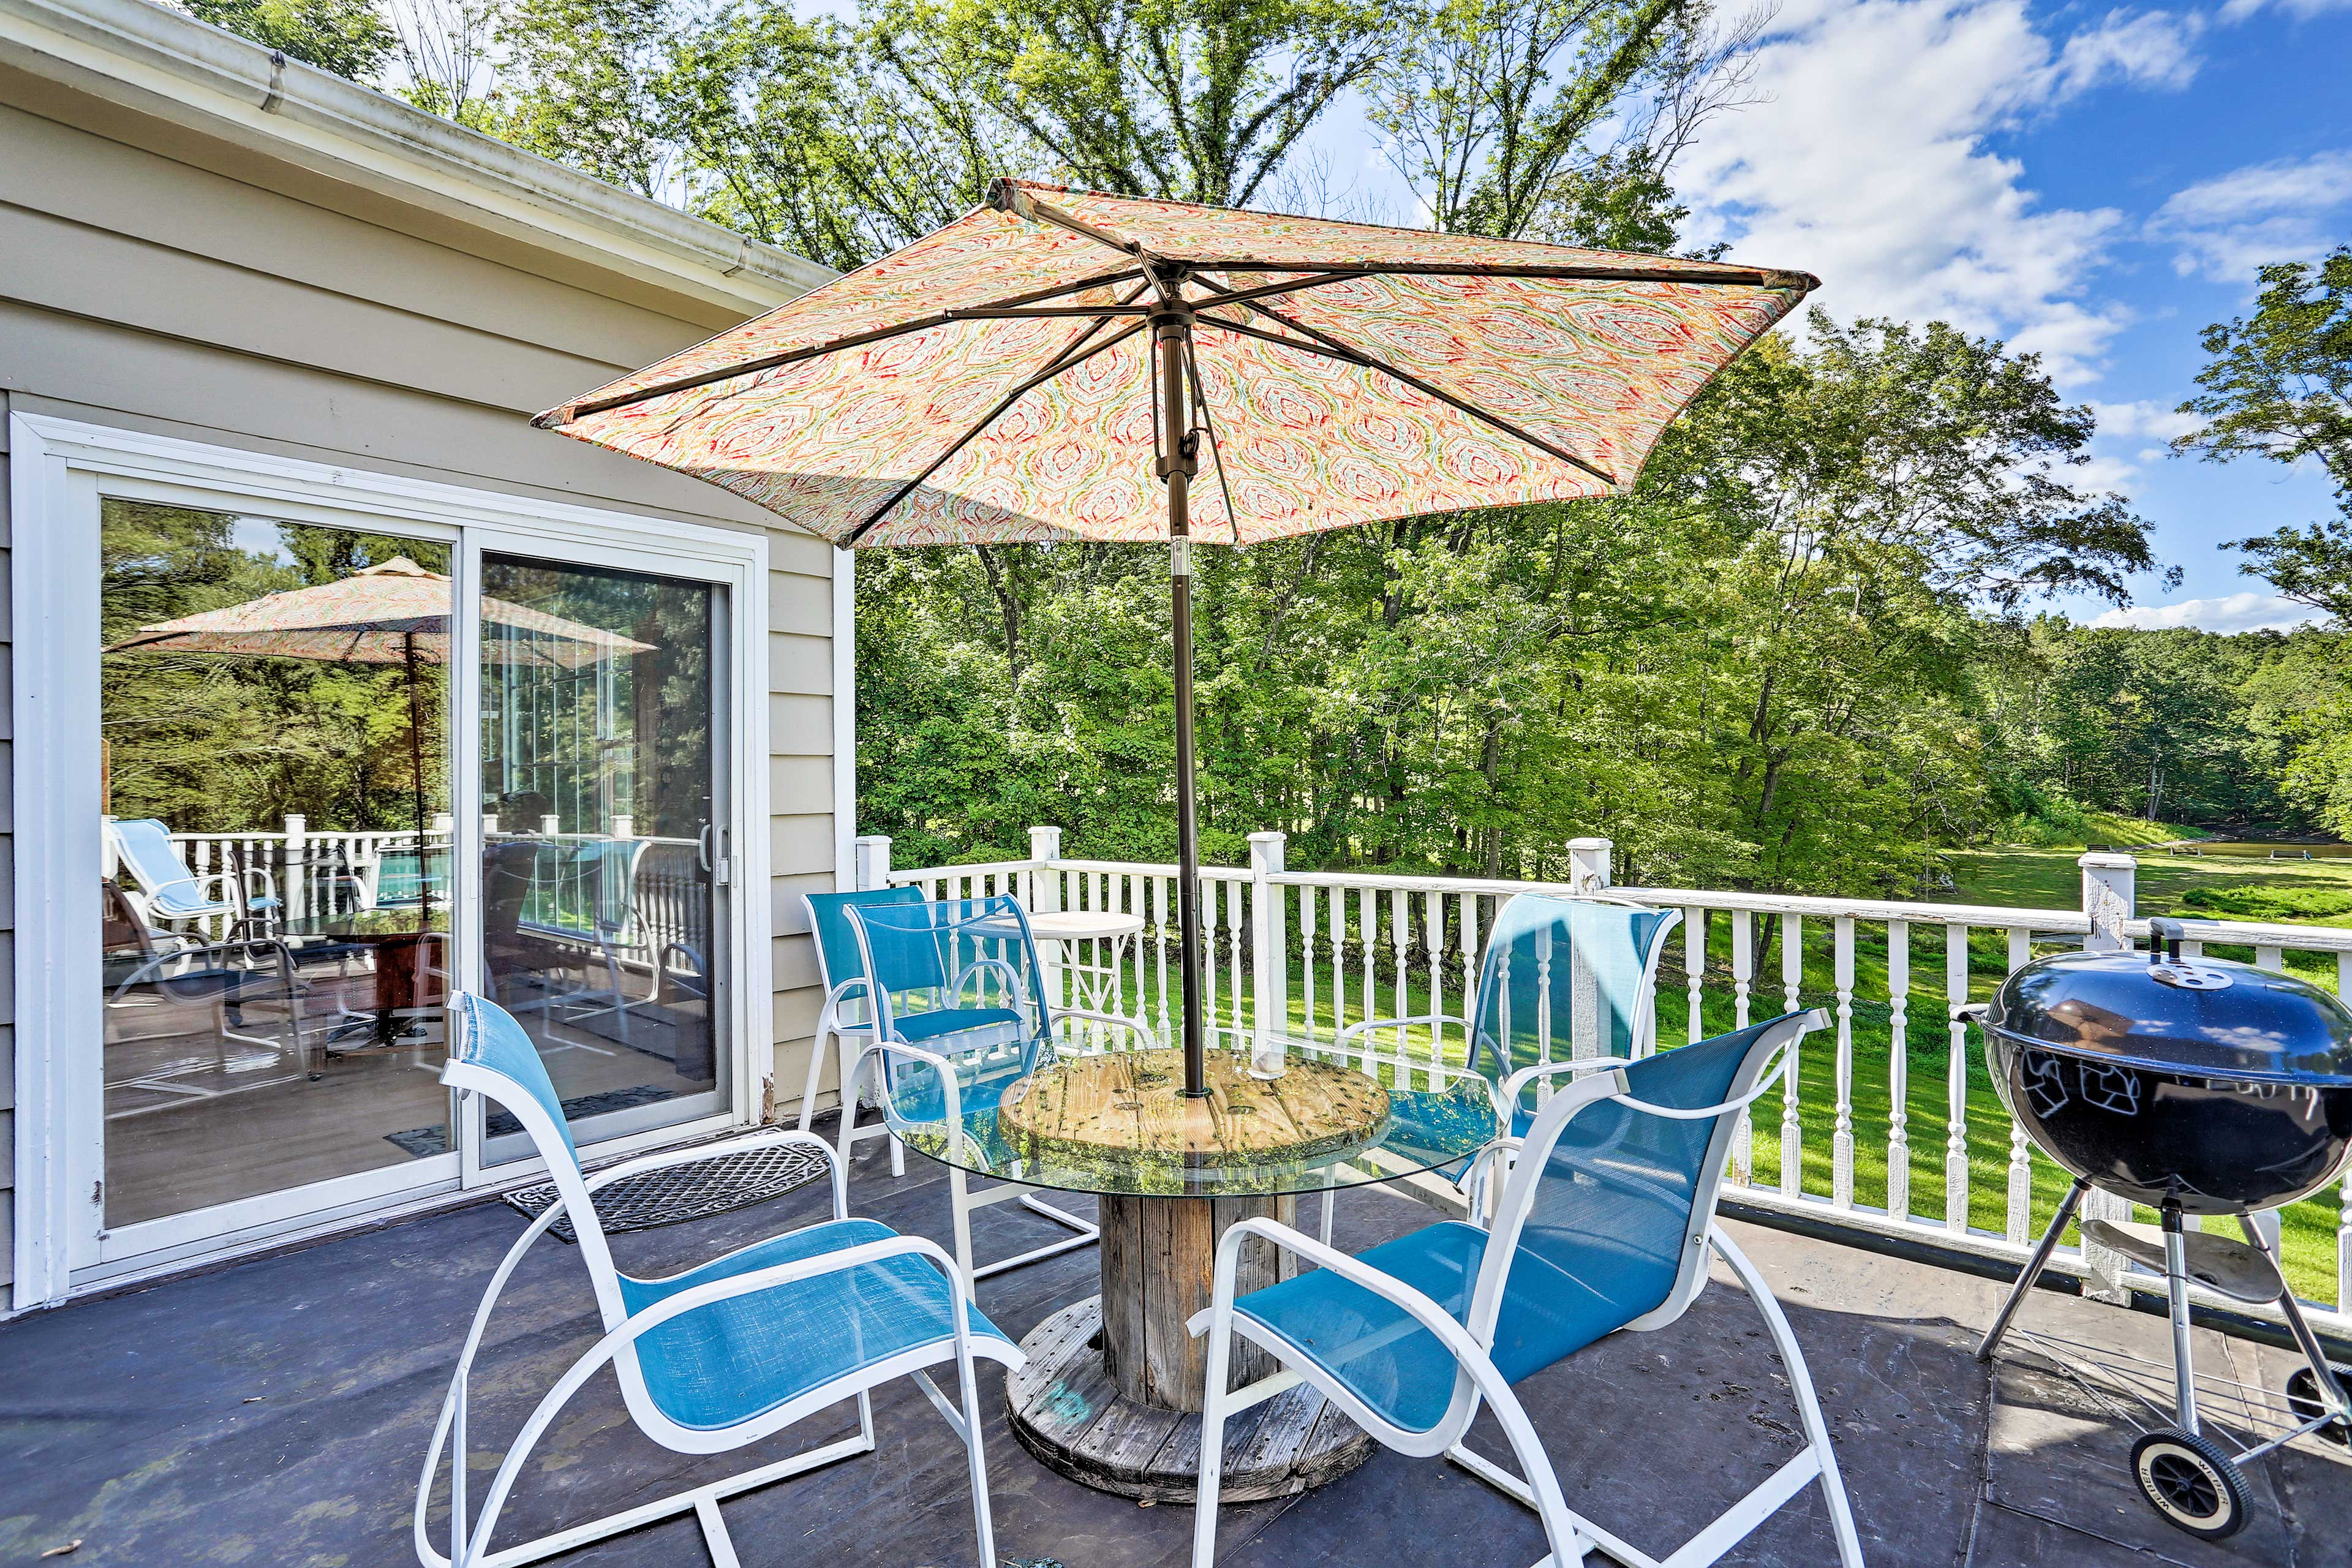 Middletown Vacation Rental   5BR   3BA   3,800 Sq Ft   1 Story